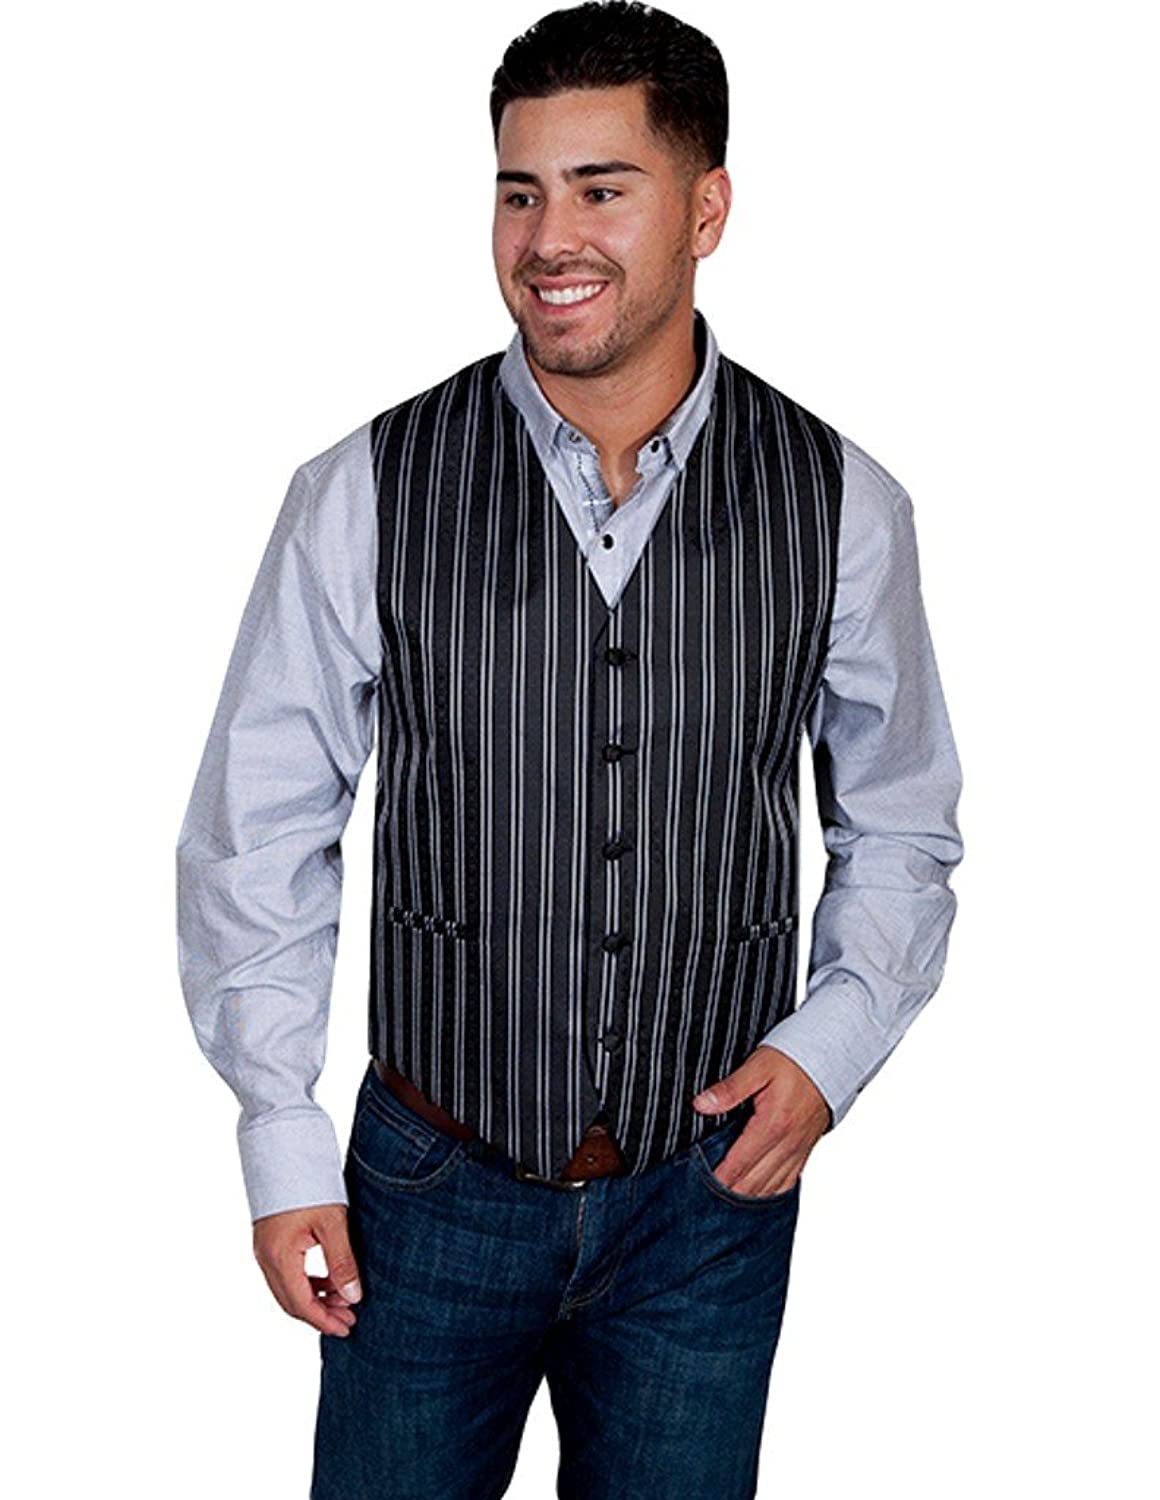 Steampunk Clothing- Men's Scully RW169N Mens Sophisticated Double Pinstripe Western Vest $55.05 AT vintagedancer.com